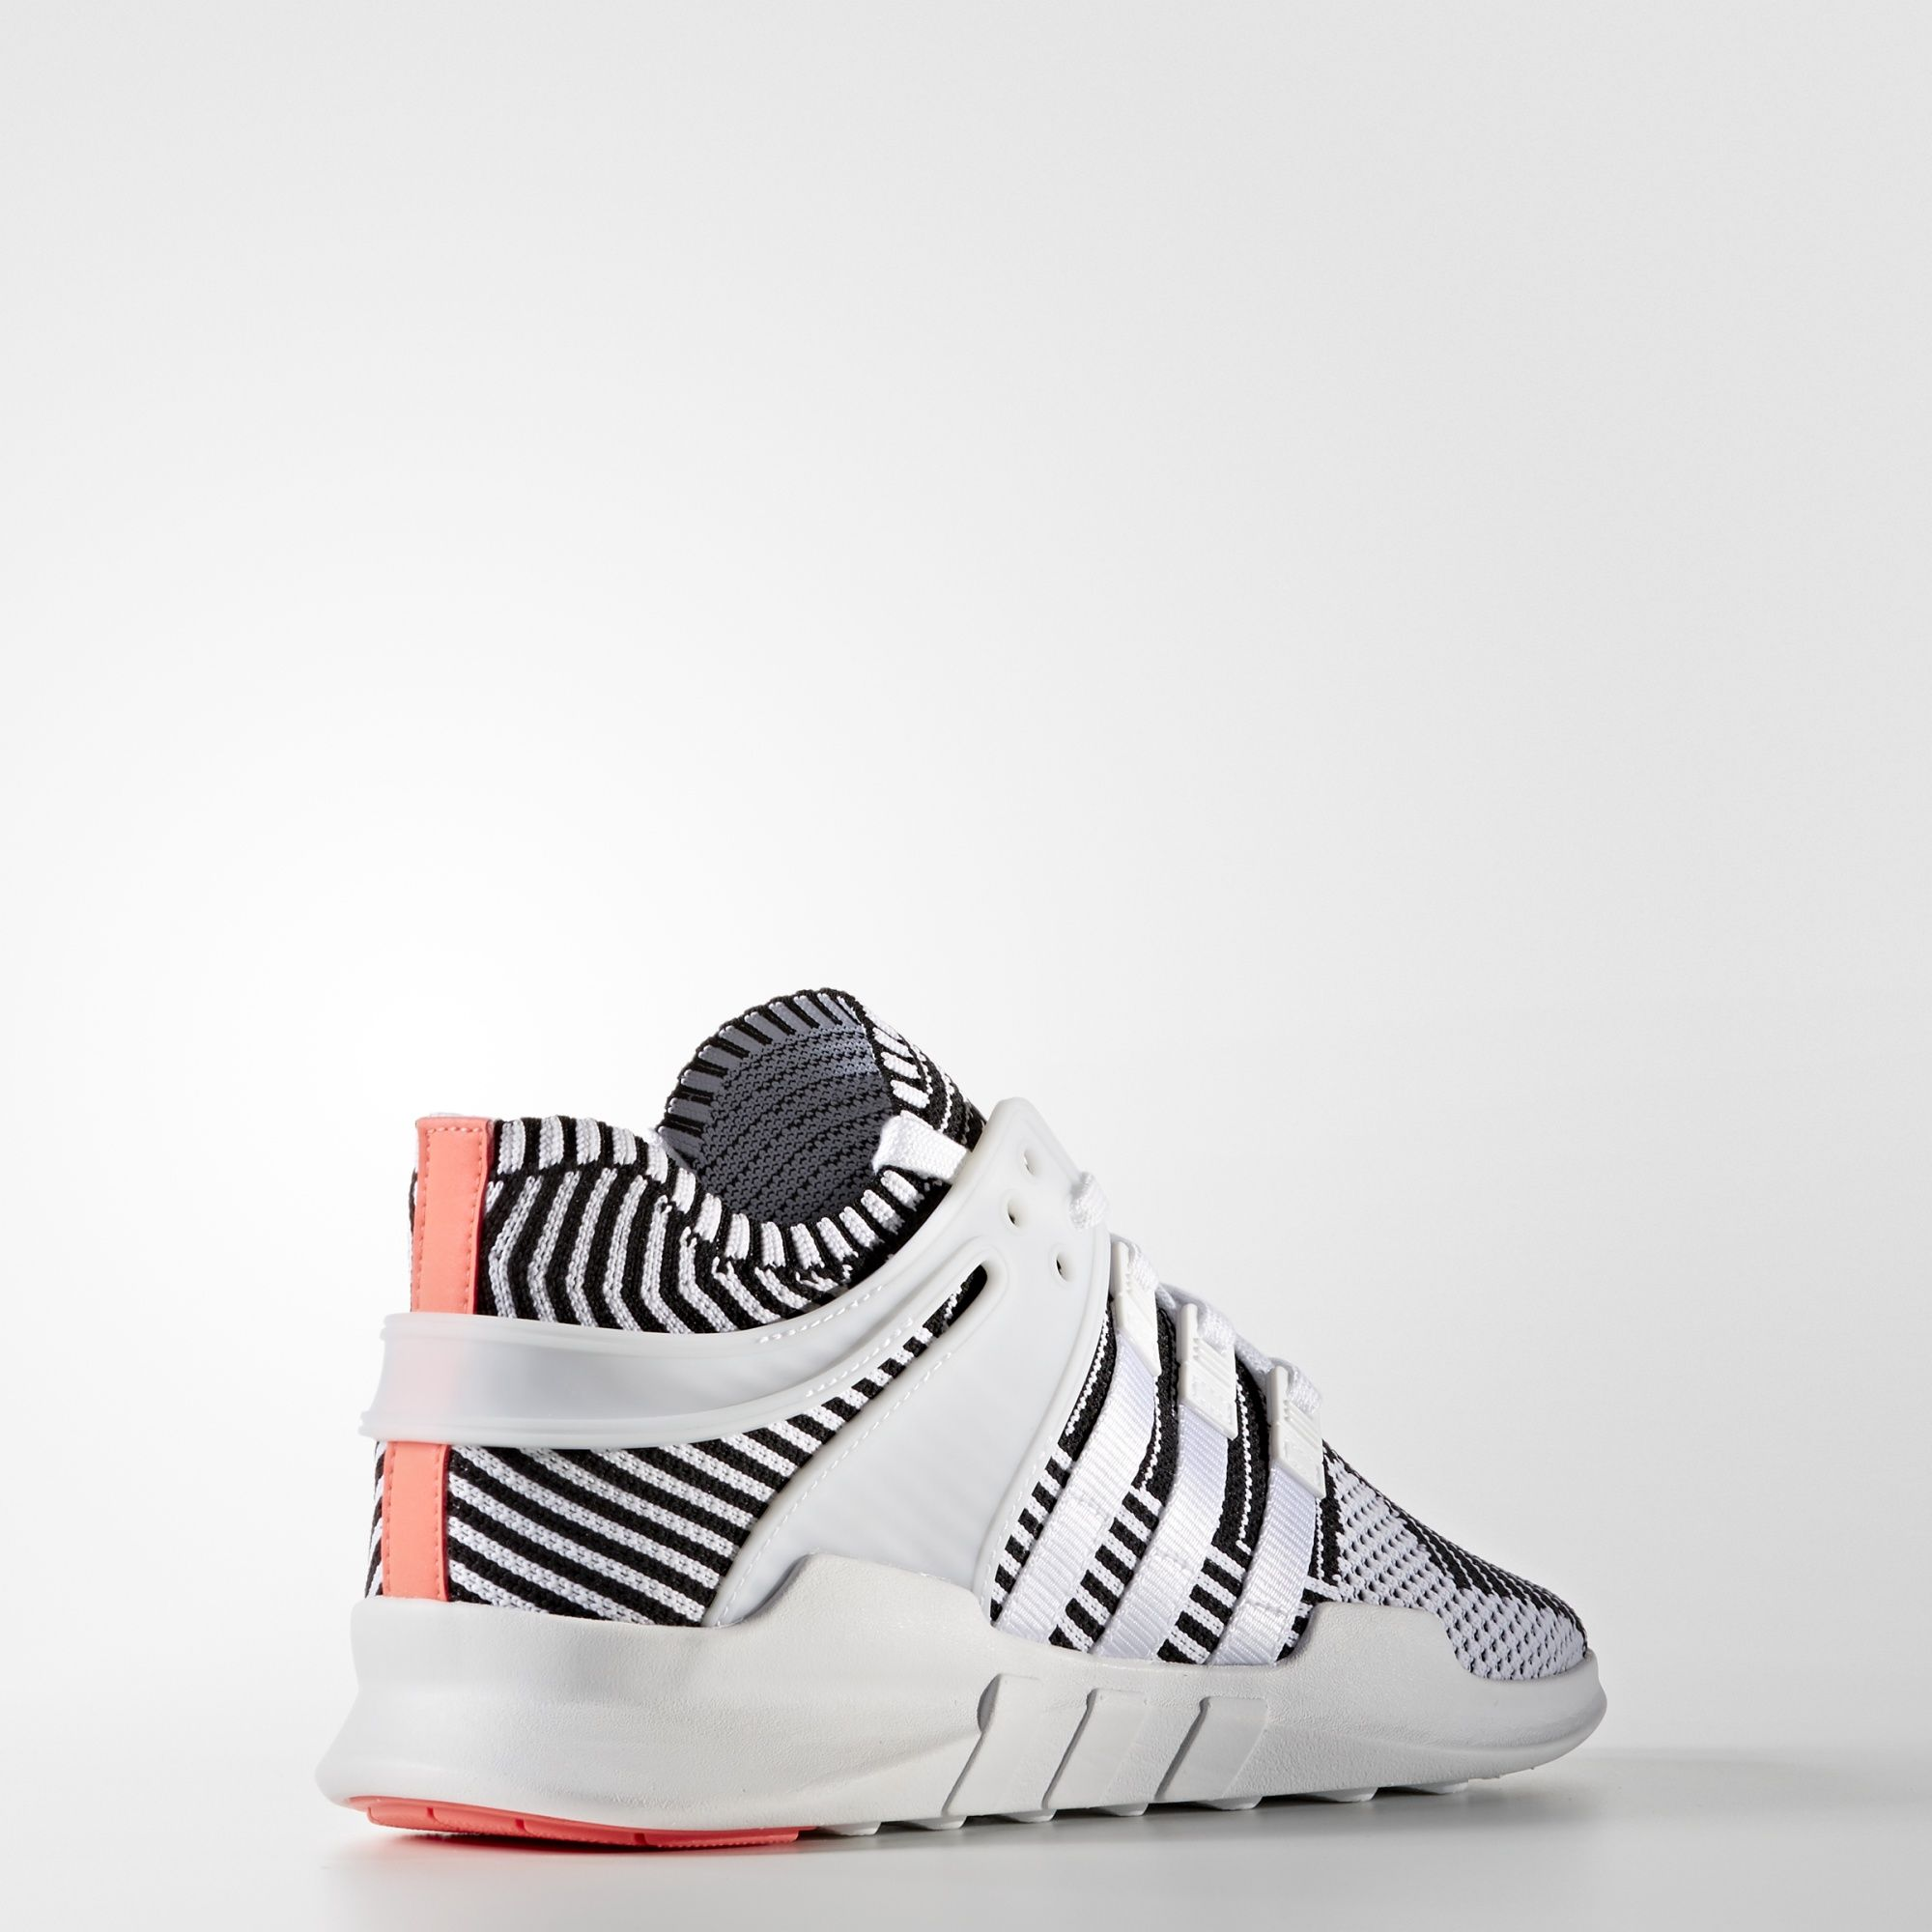 100% authentic 1dd59 14366 ... greece adidas eqt support adv primeknit shoes adidas philippines f2392  4716d